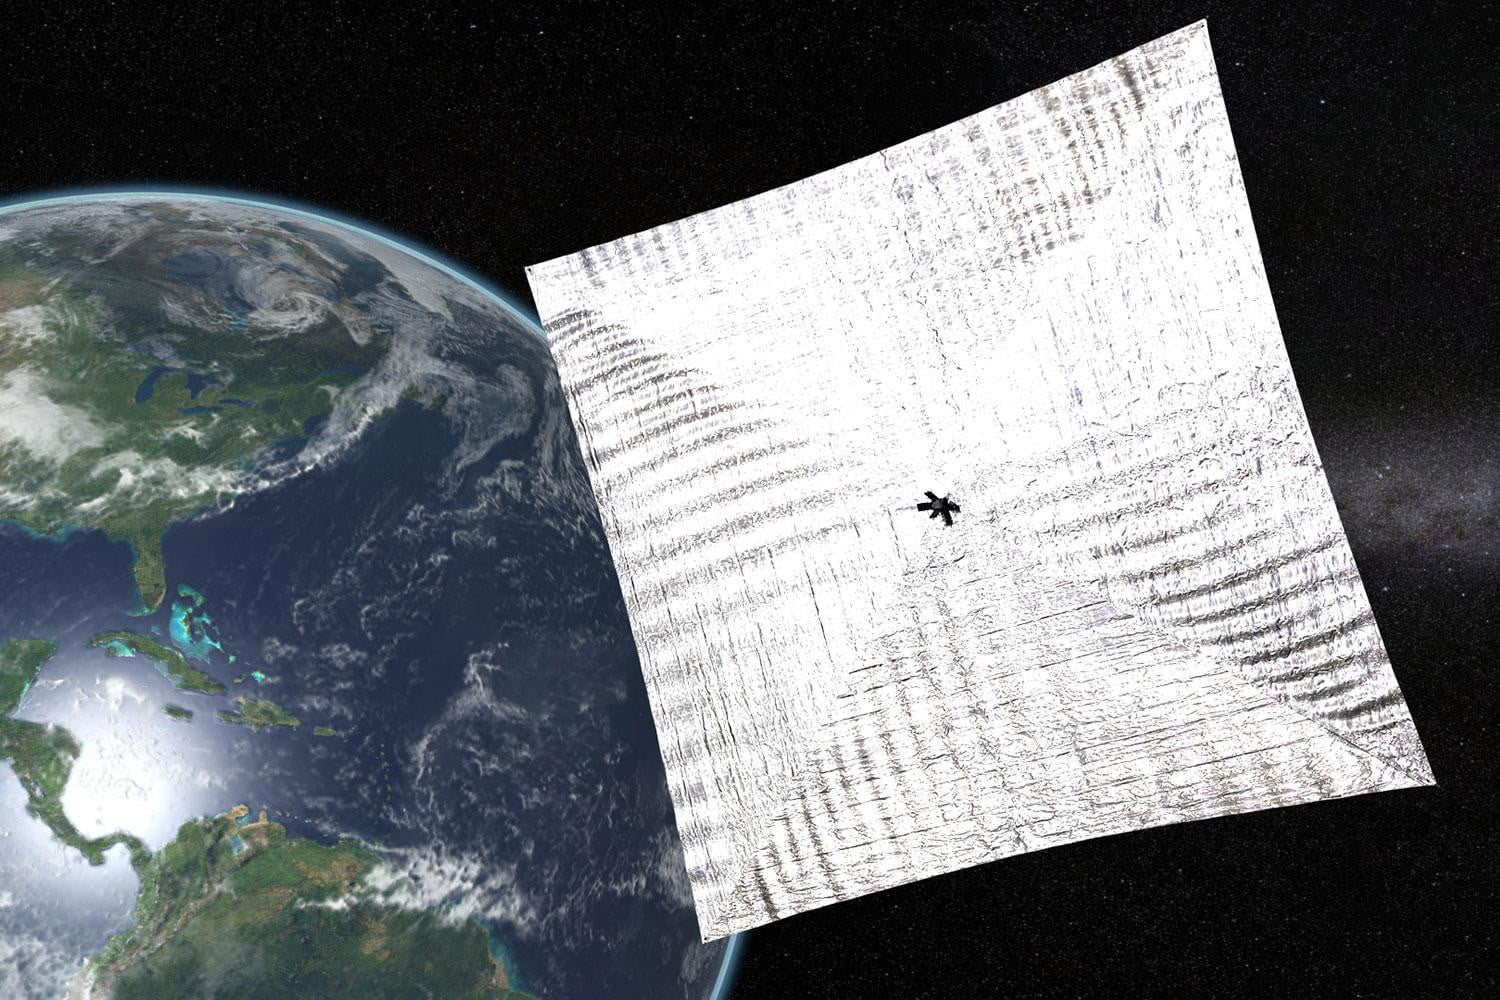 Track Bill Nye's LightSail 2 solar spaceship in real time as it makes history